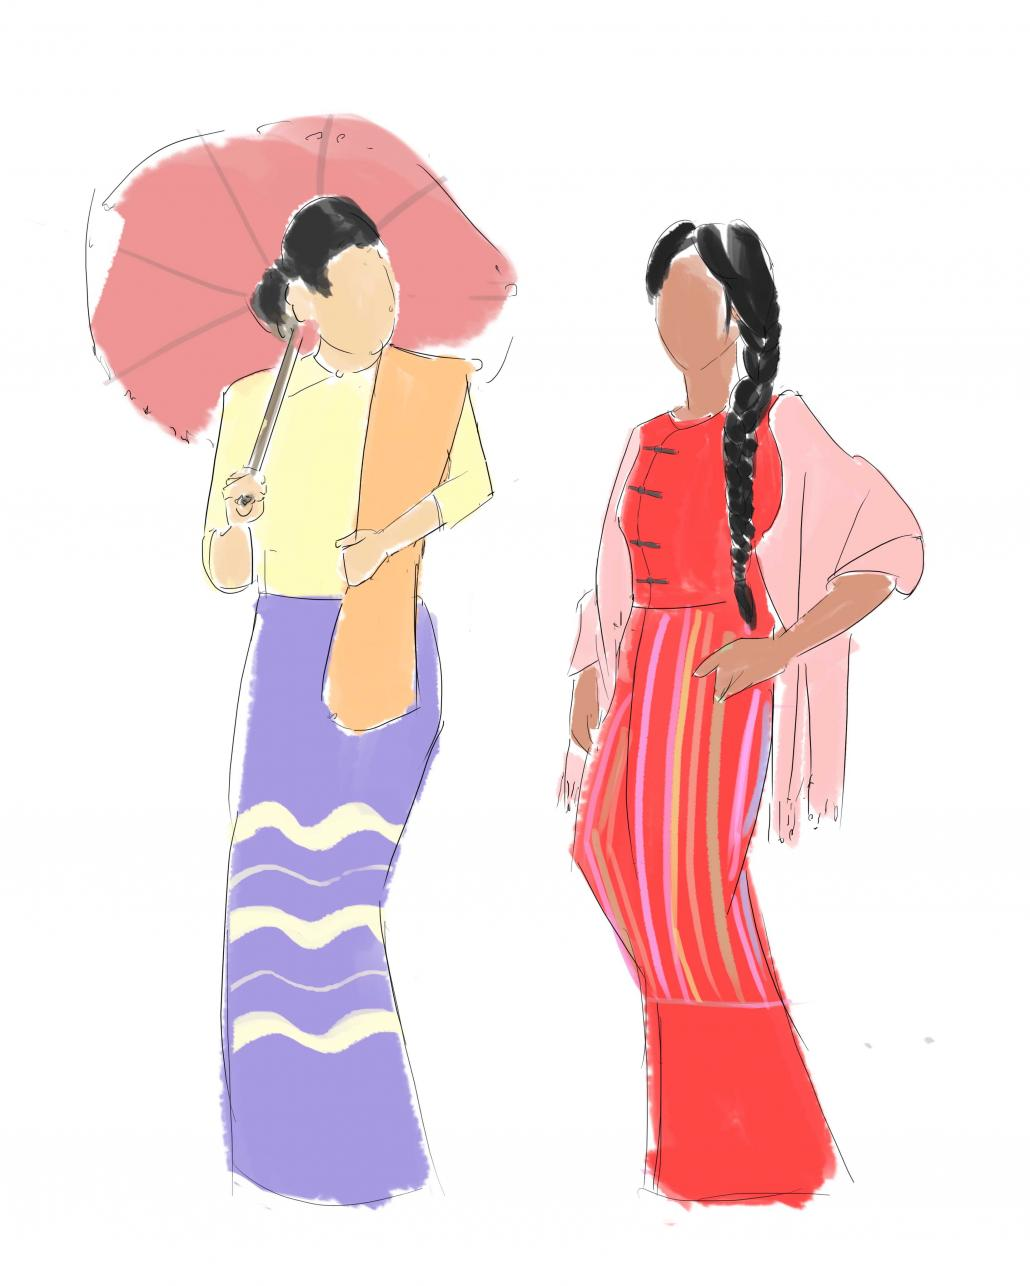 An outsider's guide to basic Myanmar's women's attire by Frontier Myanmar. (Illustration by Jared Downing | Frontier)